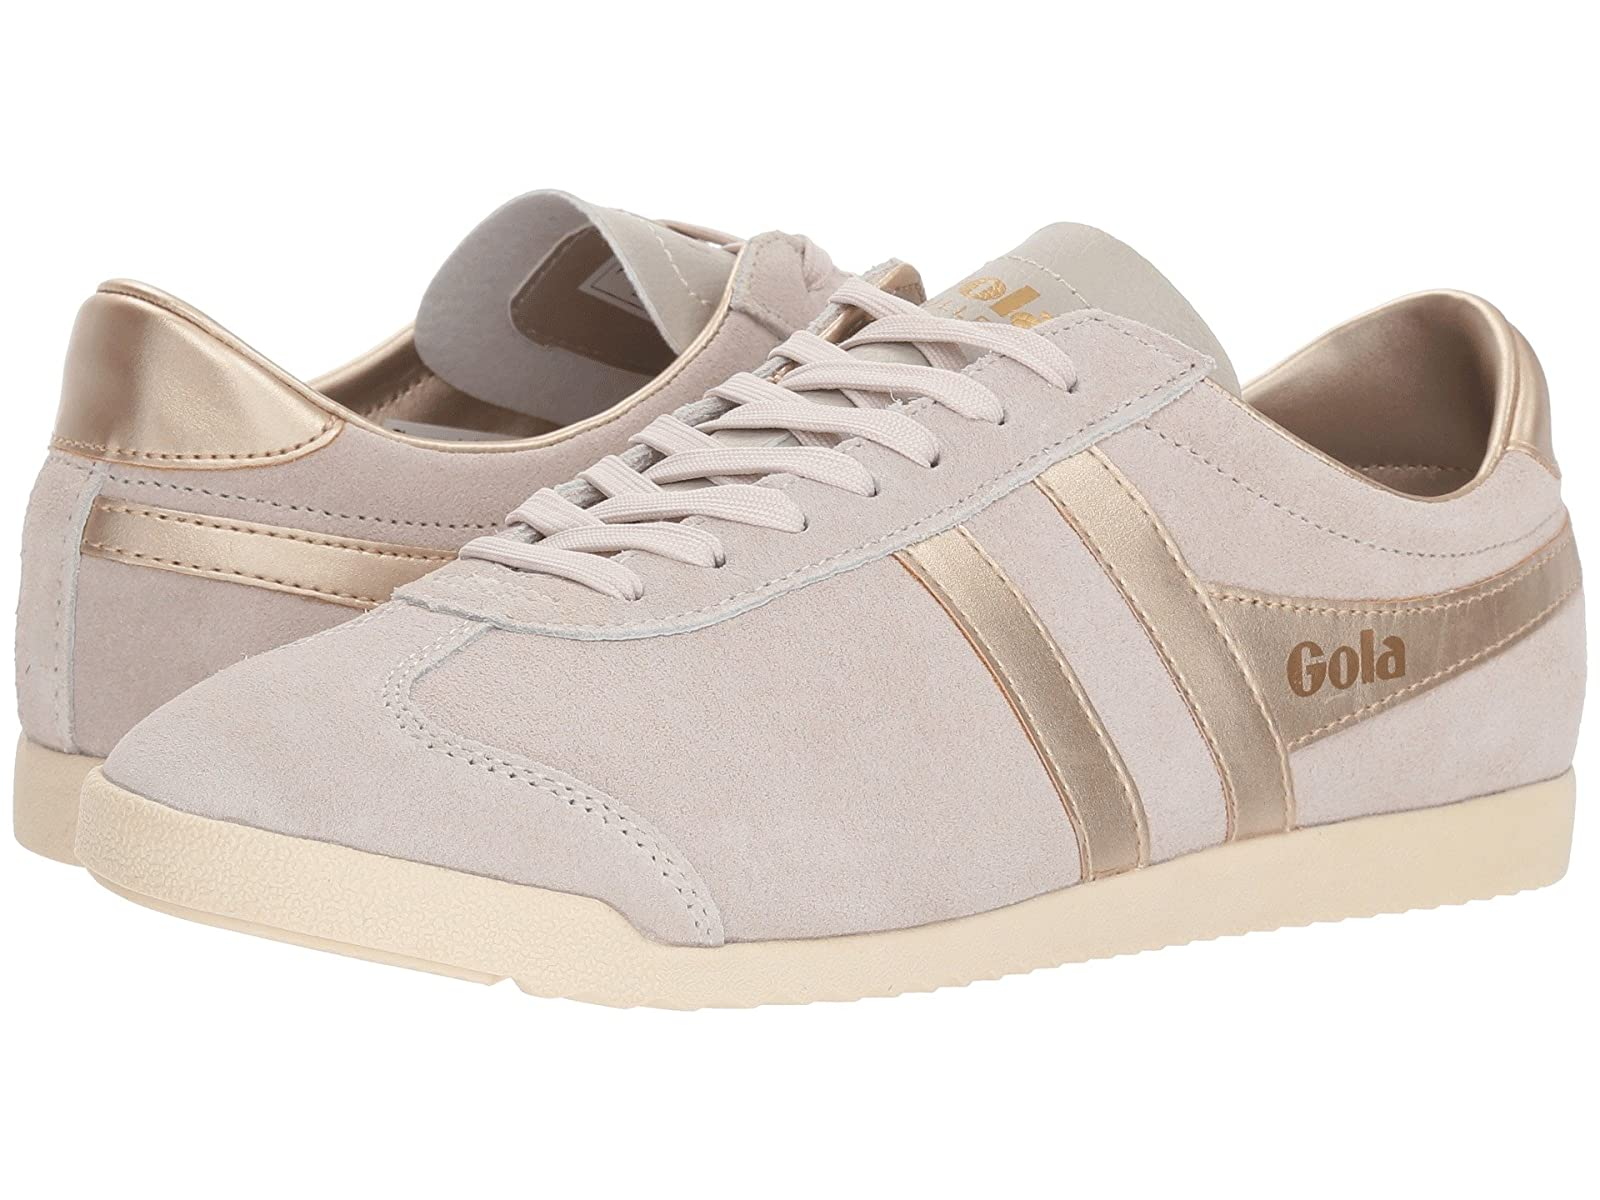 Gola Bullet PearlAtmospheric grades have affordable shoes